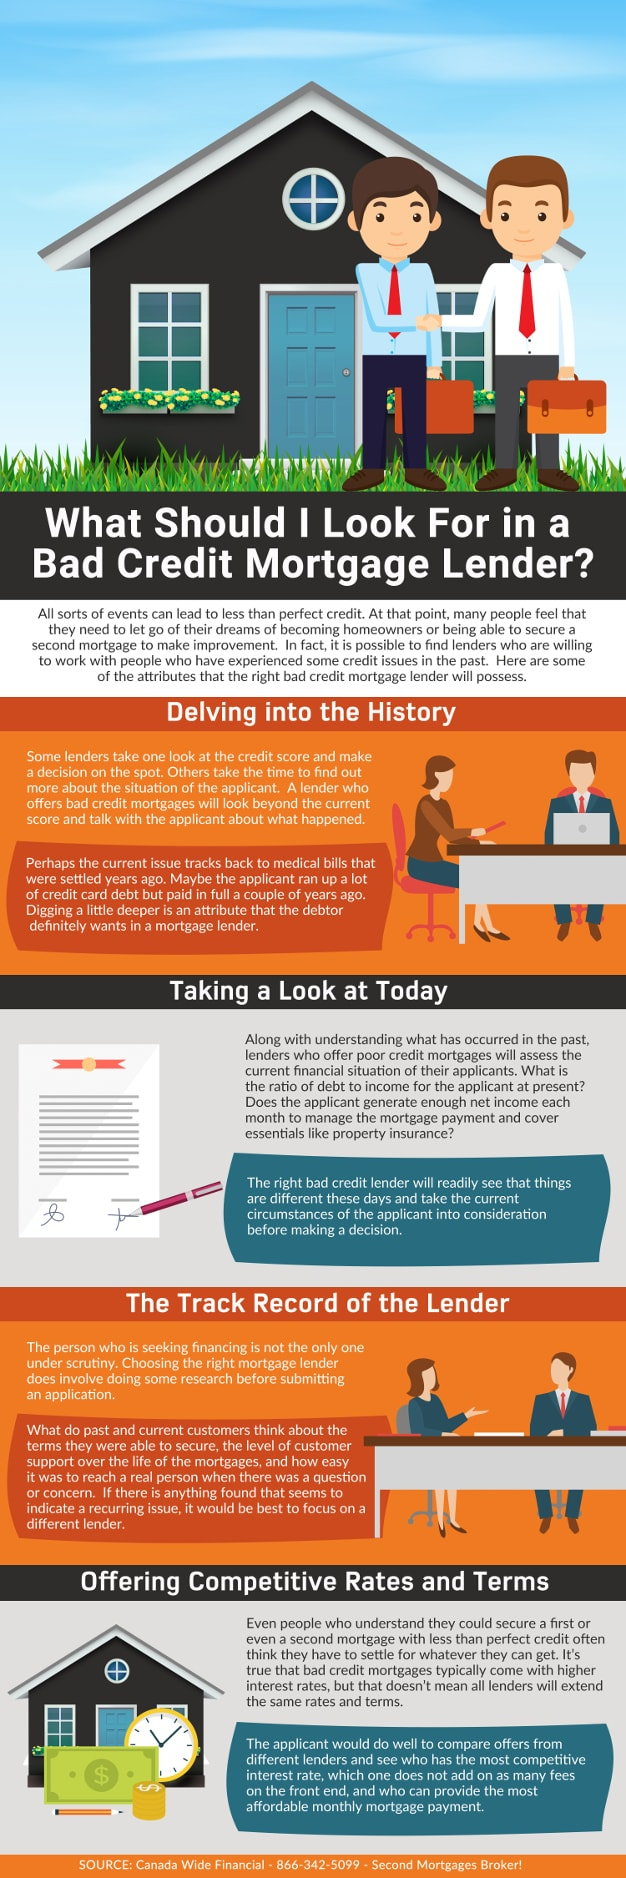 What Should I Look For in a Bad Credit Mortgage Lender - Infographic